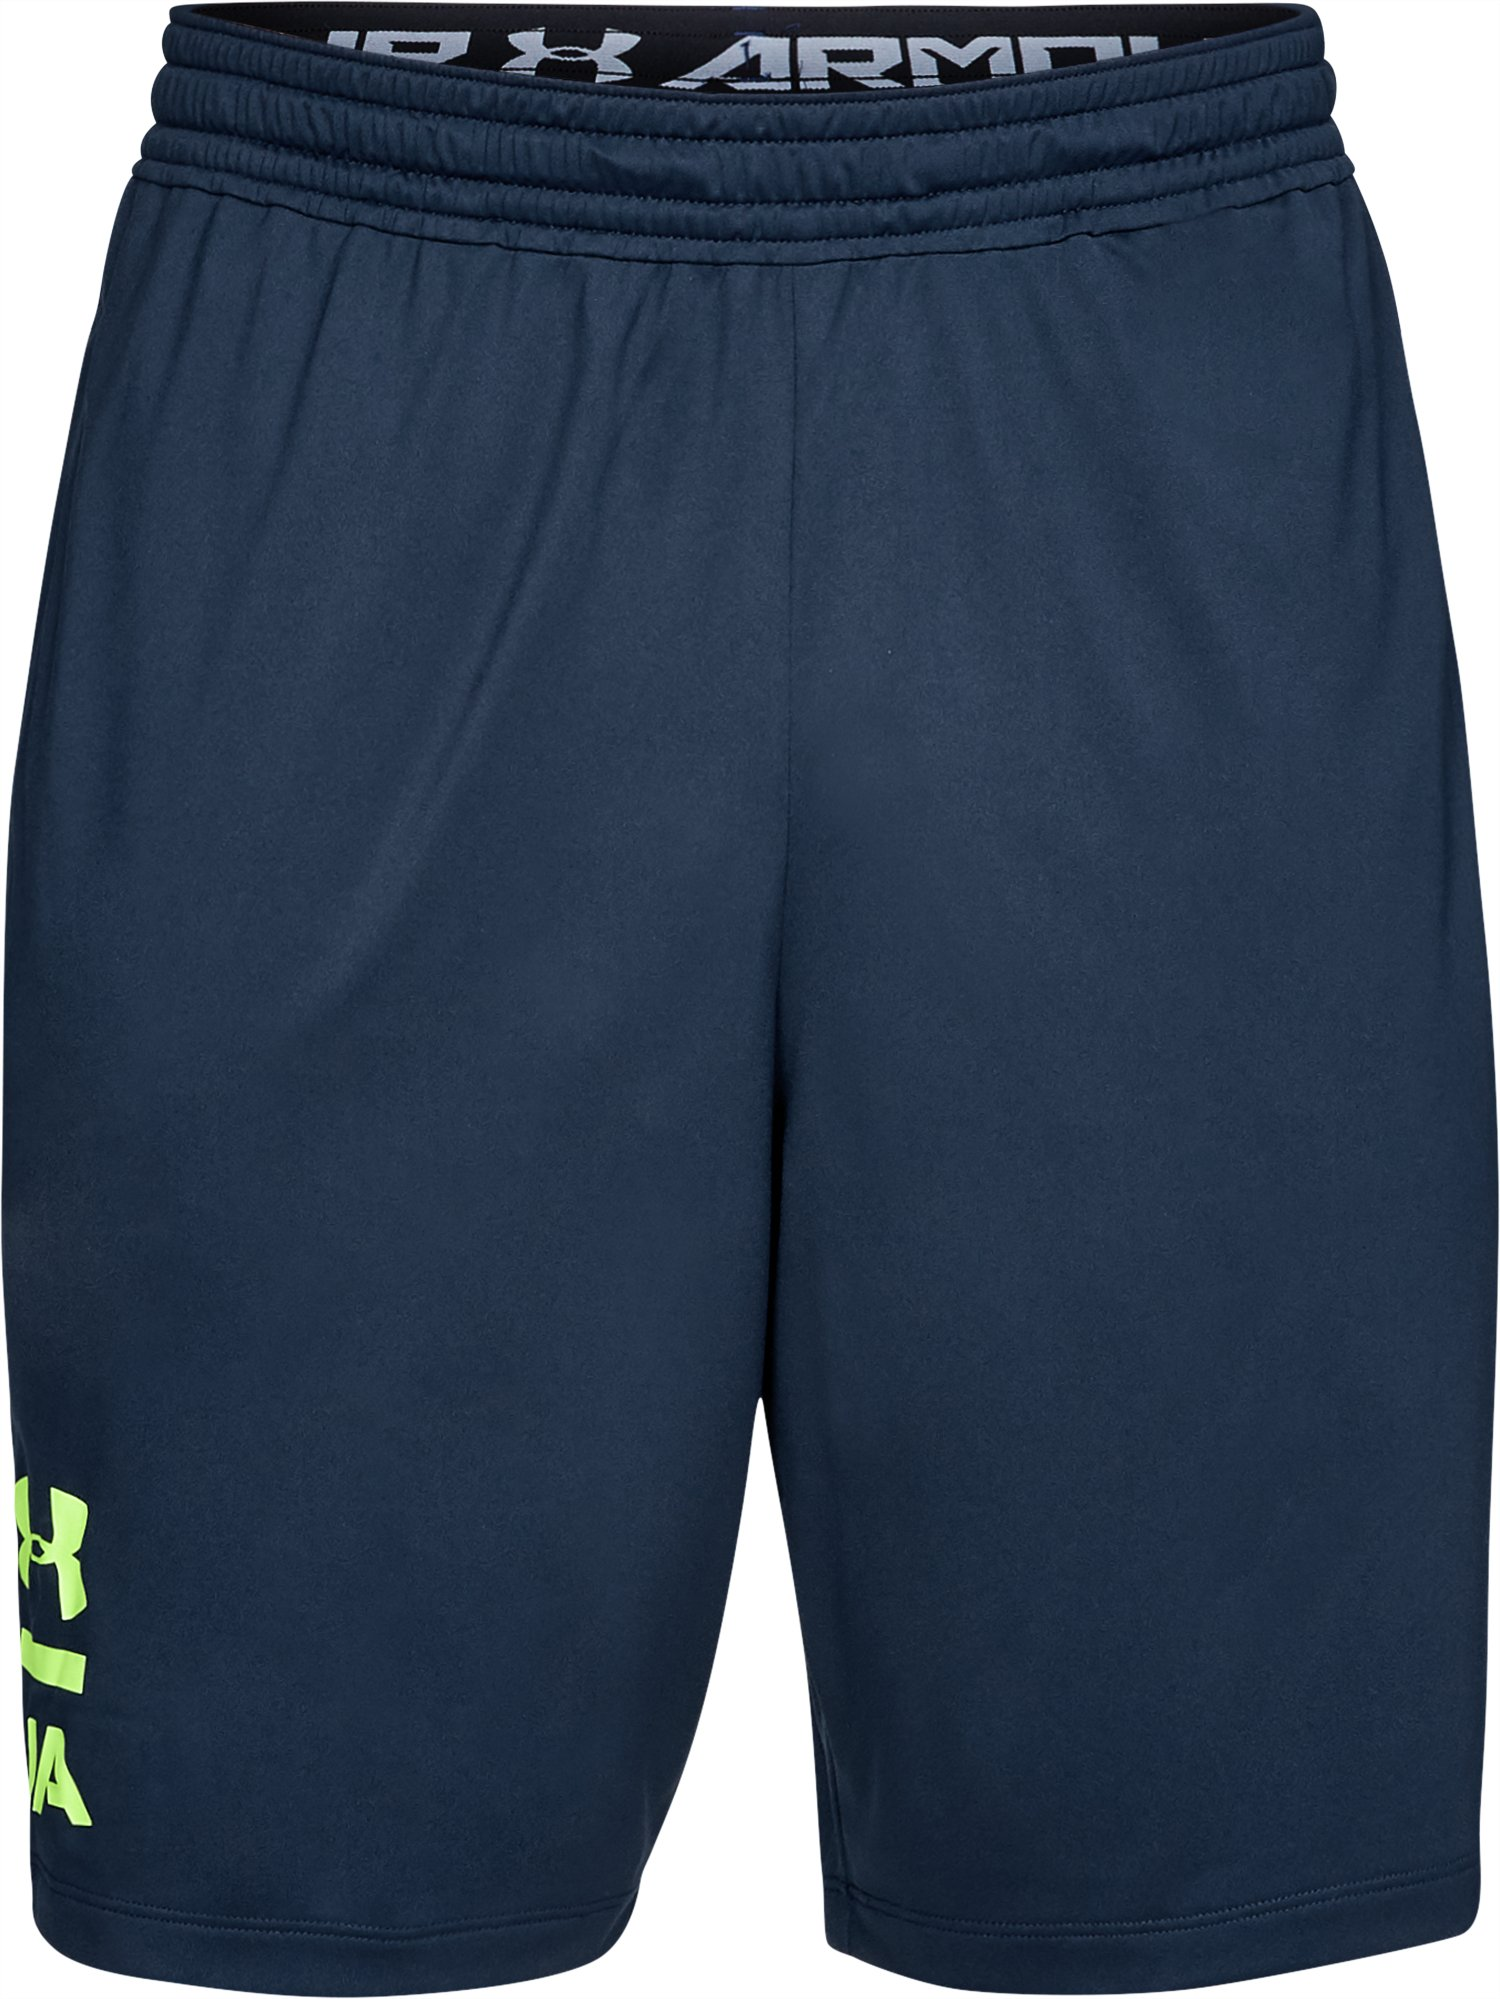 Men's UA MK-1 Graphic Shorts, Academy, undefined